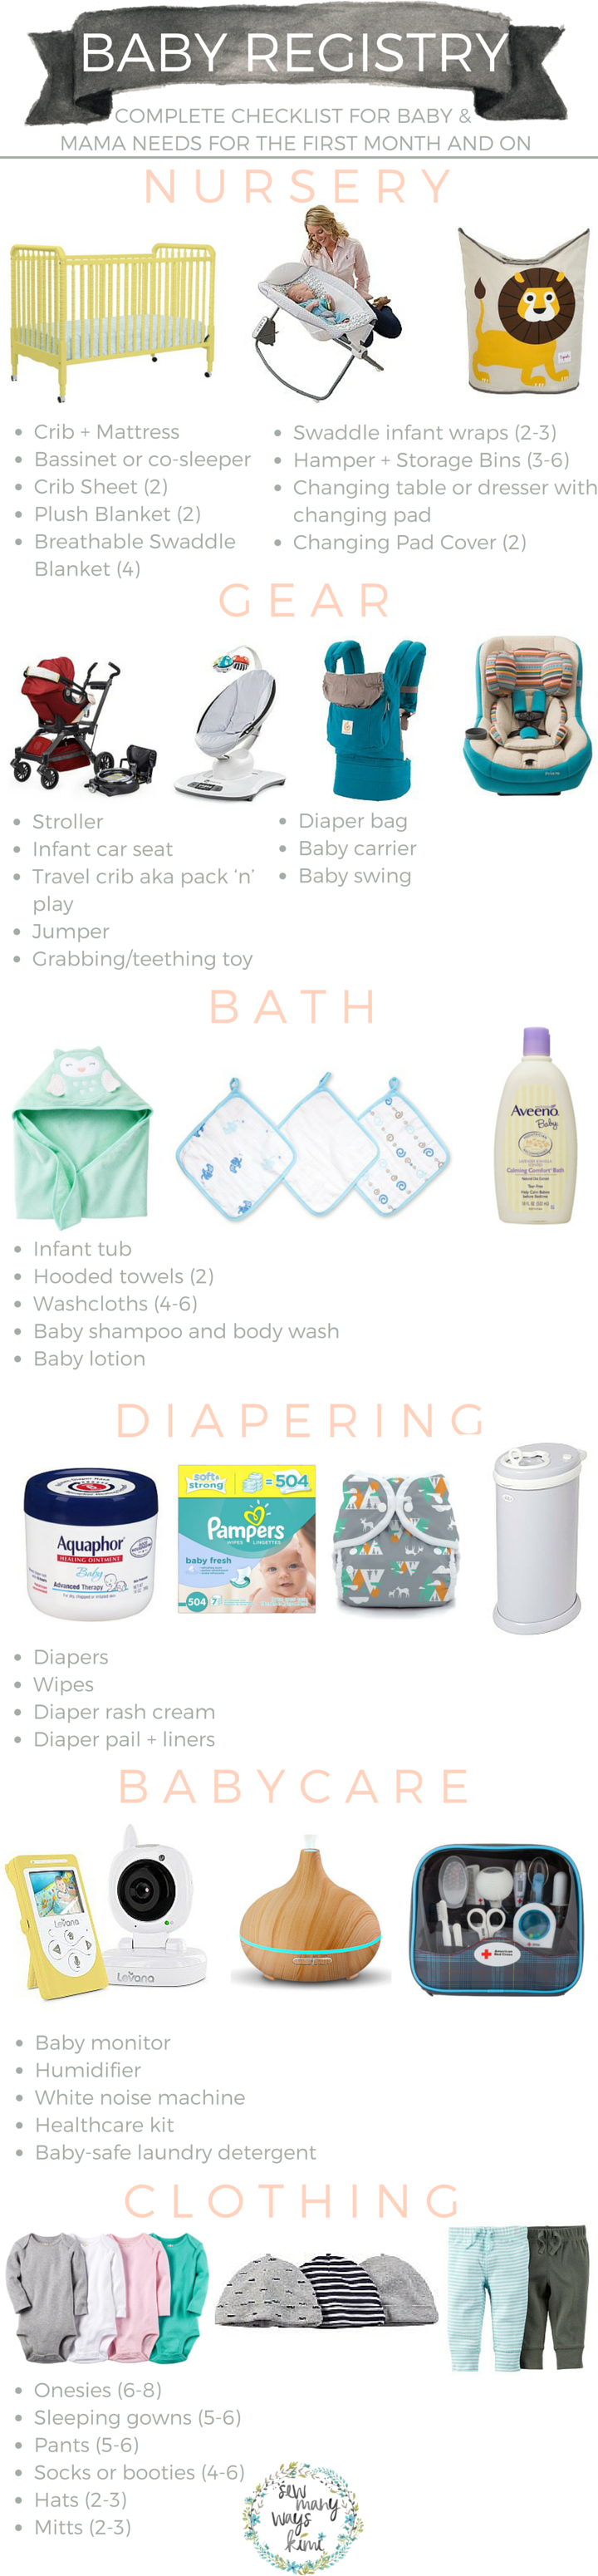 Baby registry checklist for everything mama and baby needs ...